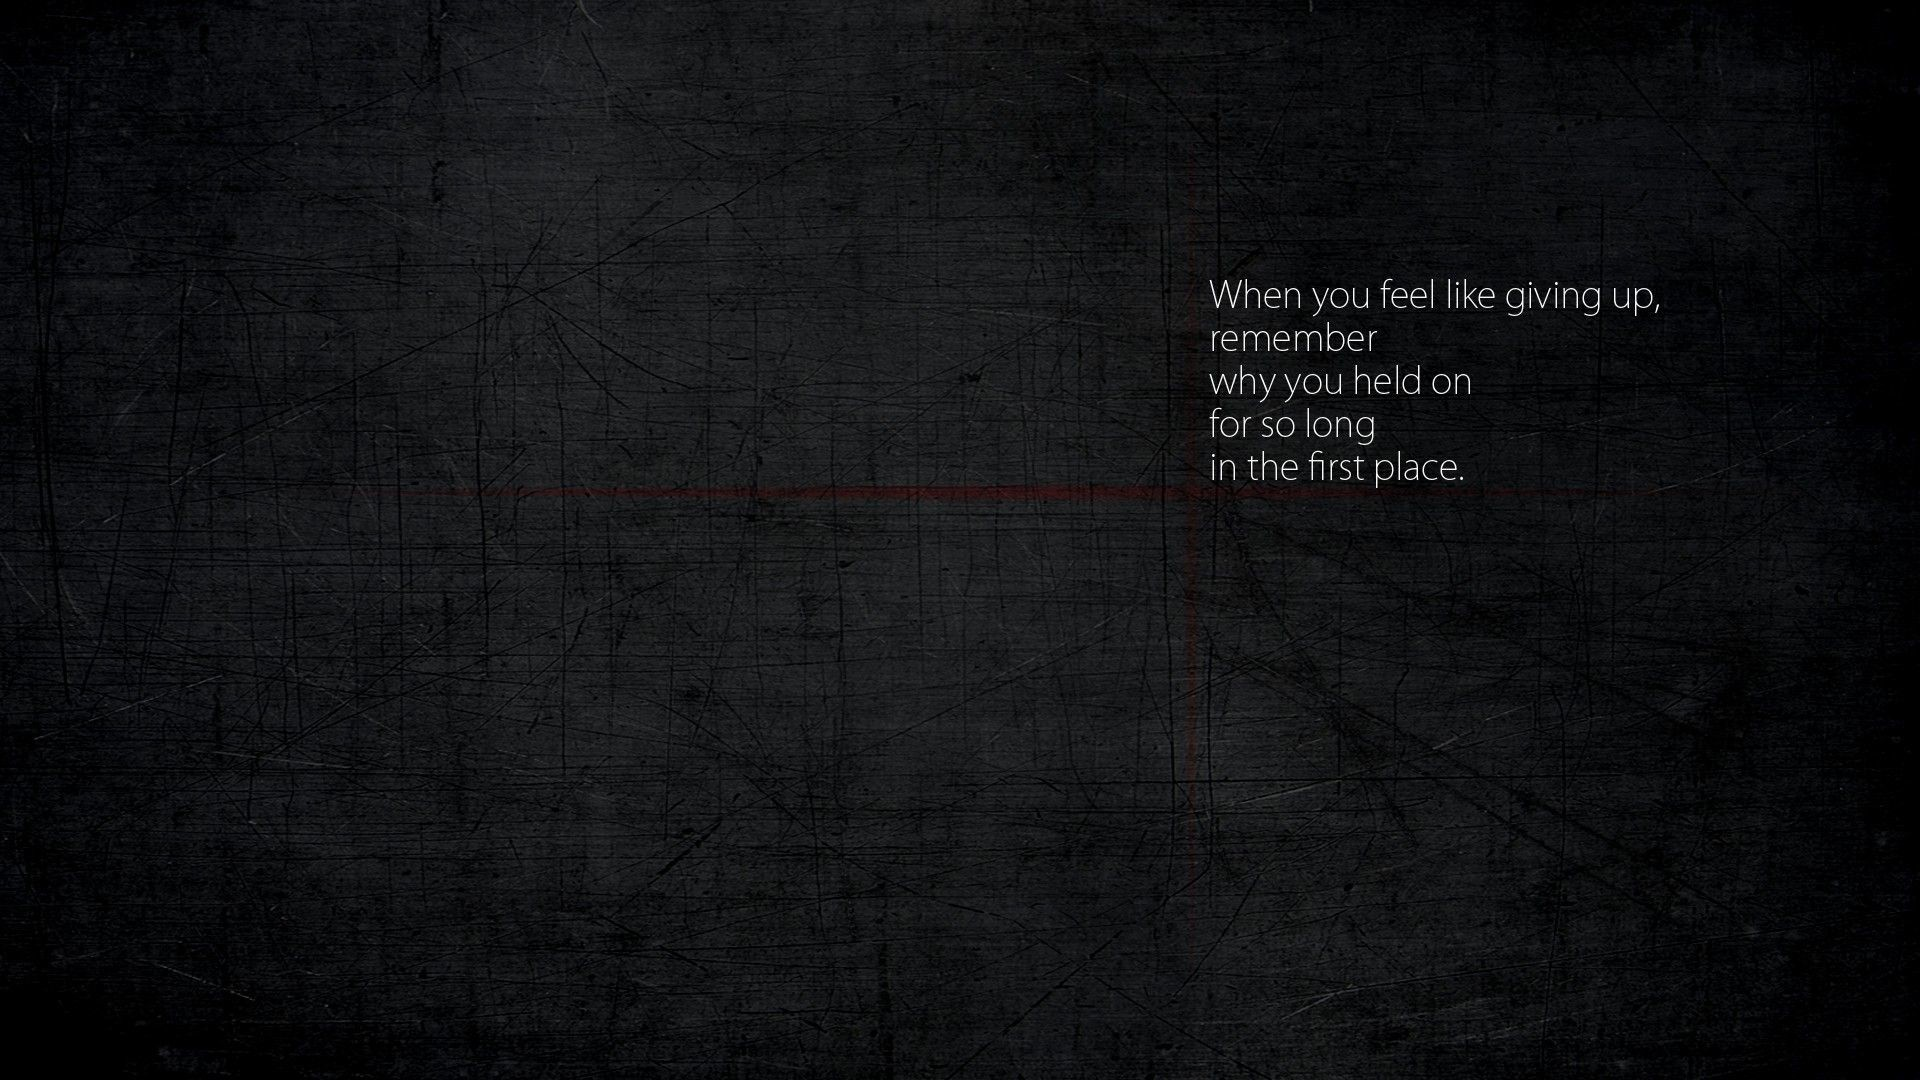 1920x1080 Awesome 85 HD Motivational Desktop Wallpaper Over Here that Inspires!